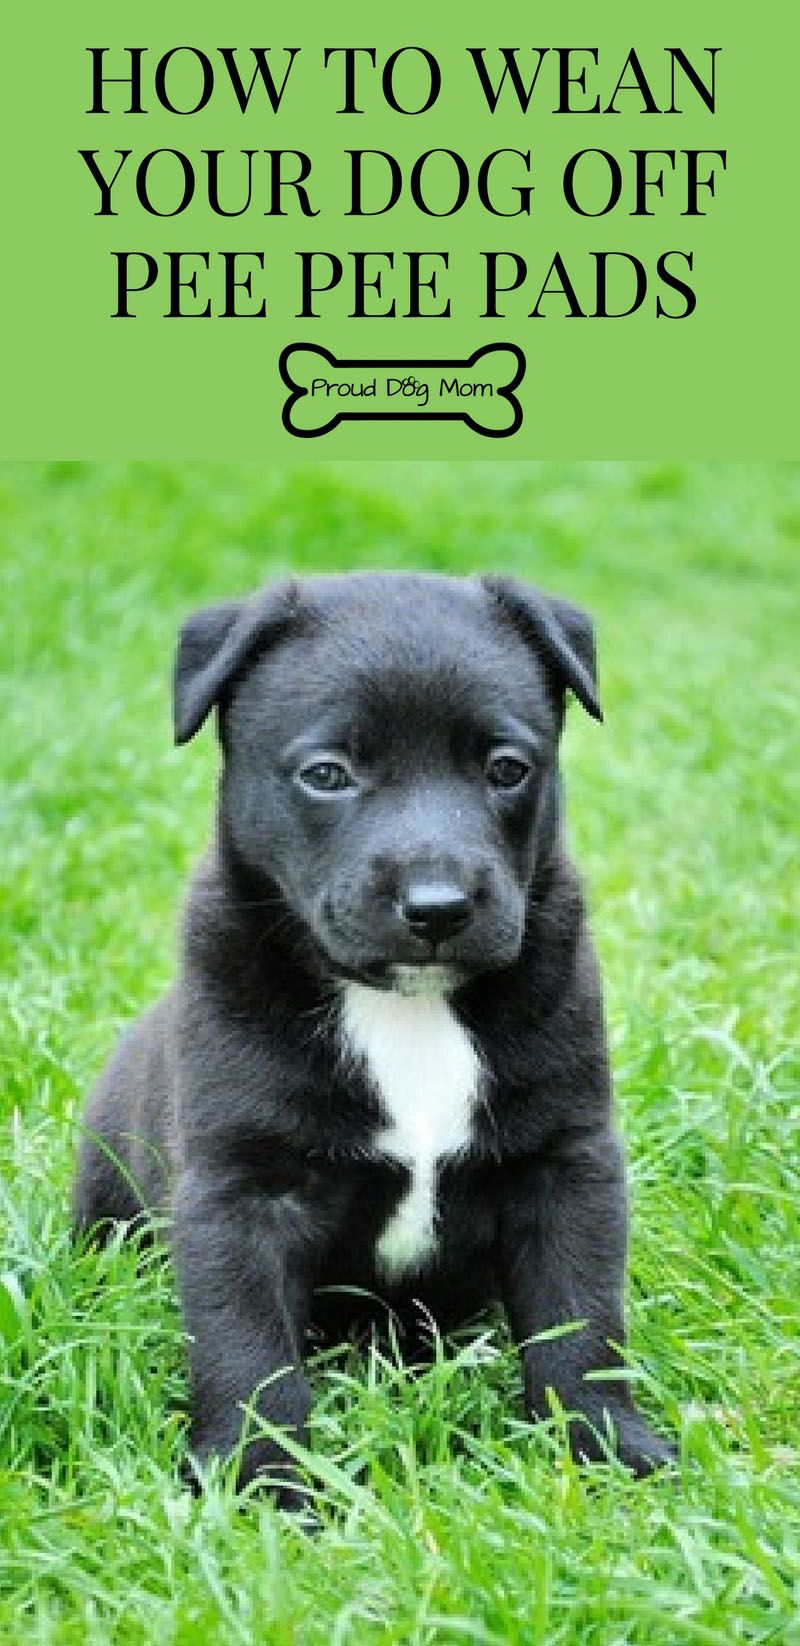 How To Wean Your Dog Off Pee Pee Pads Training your dog